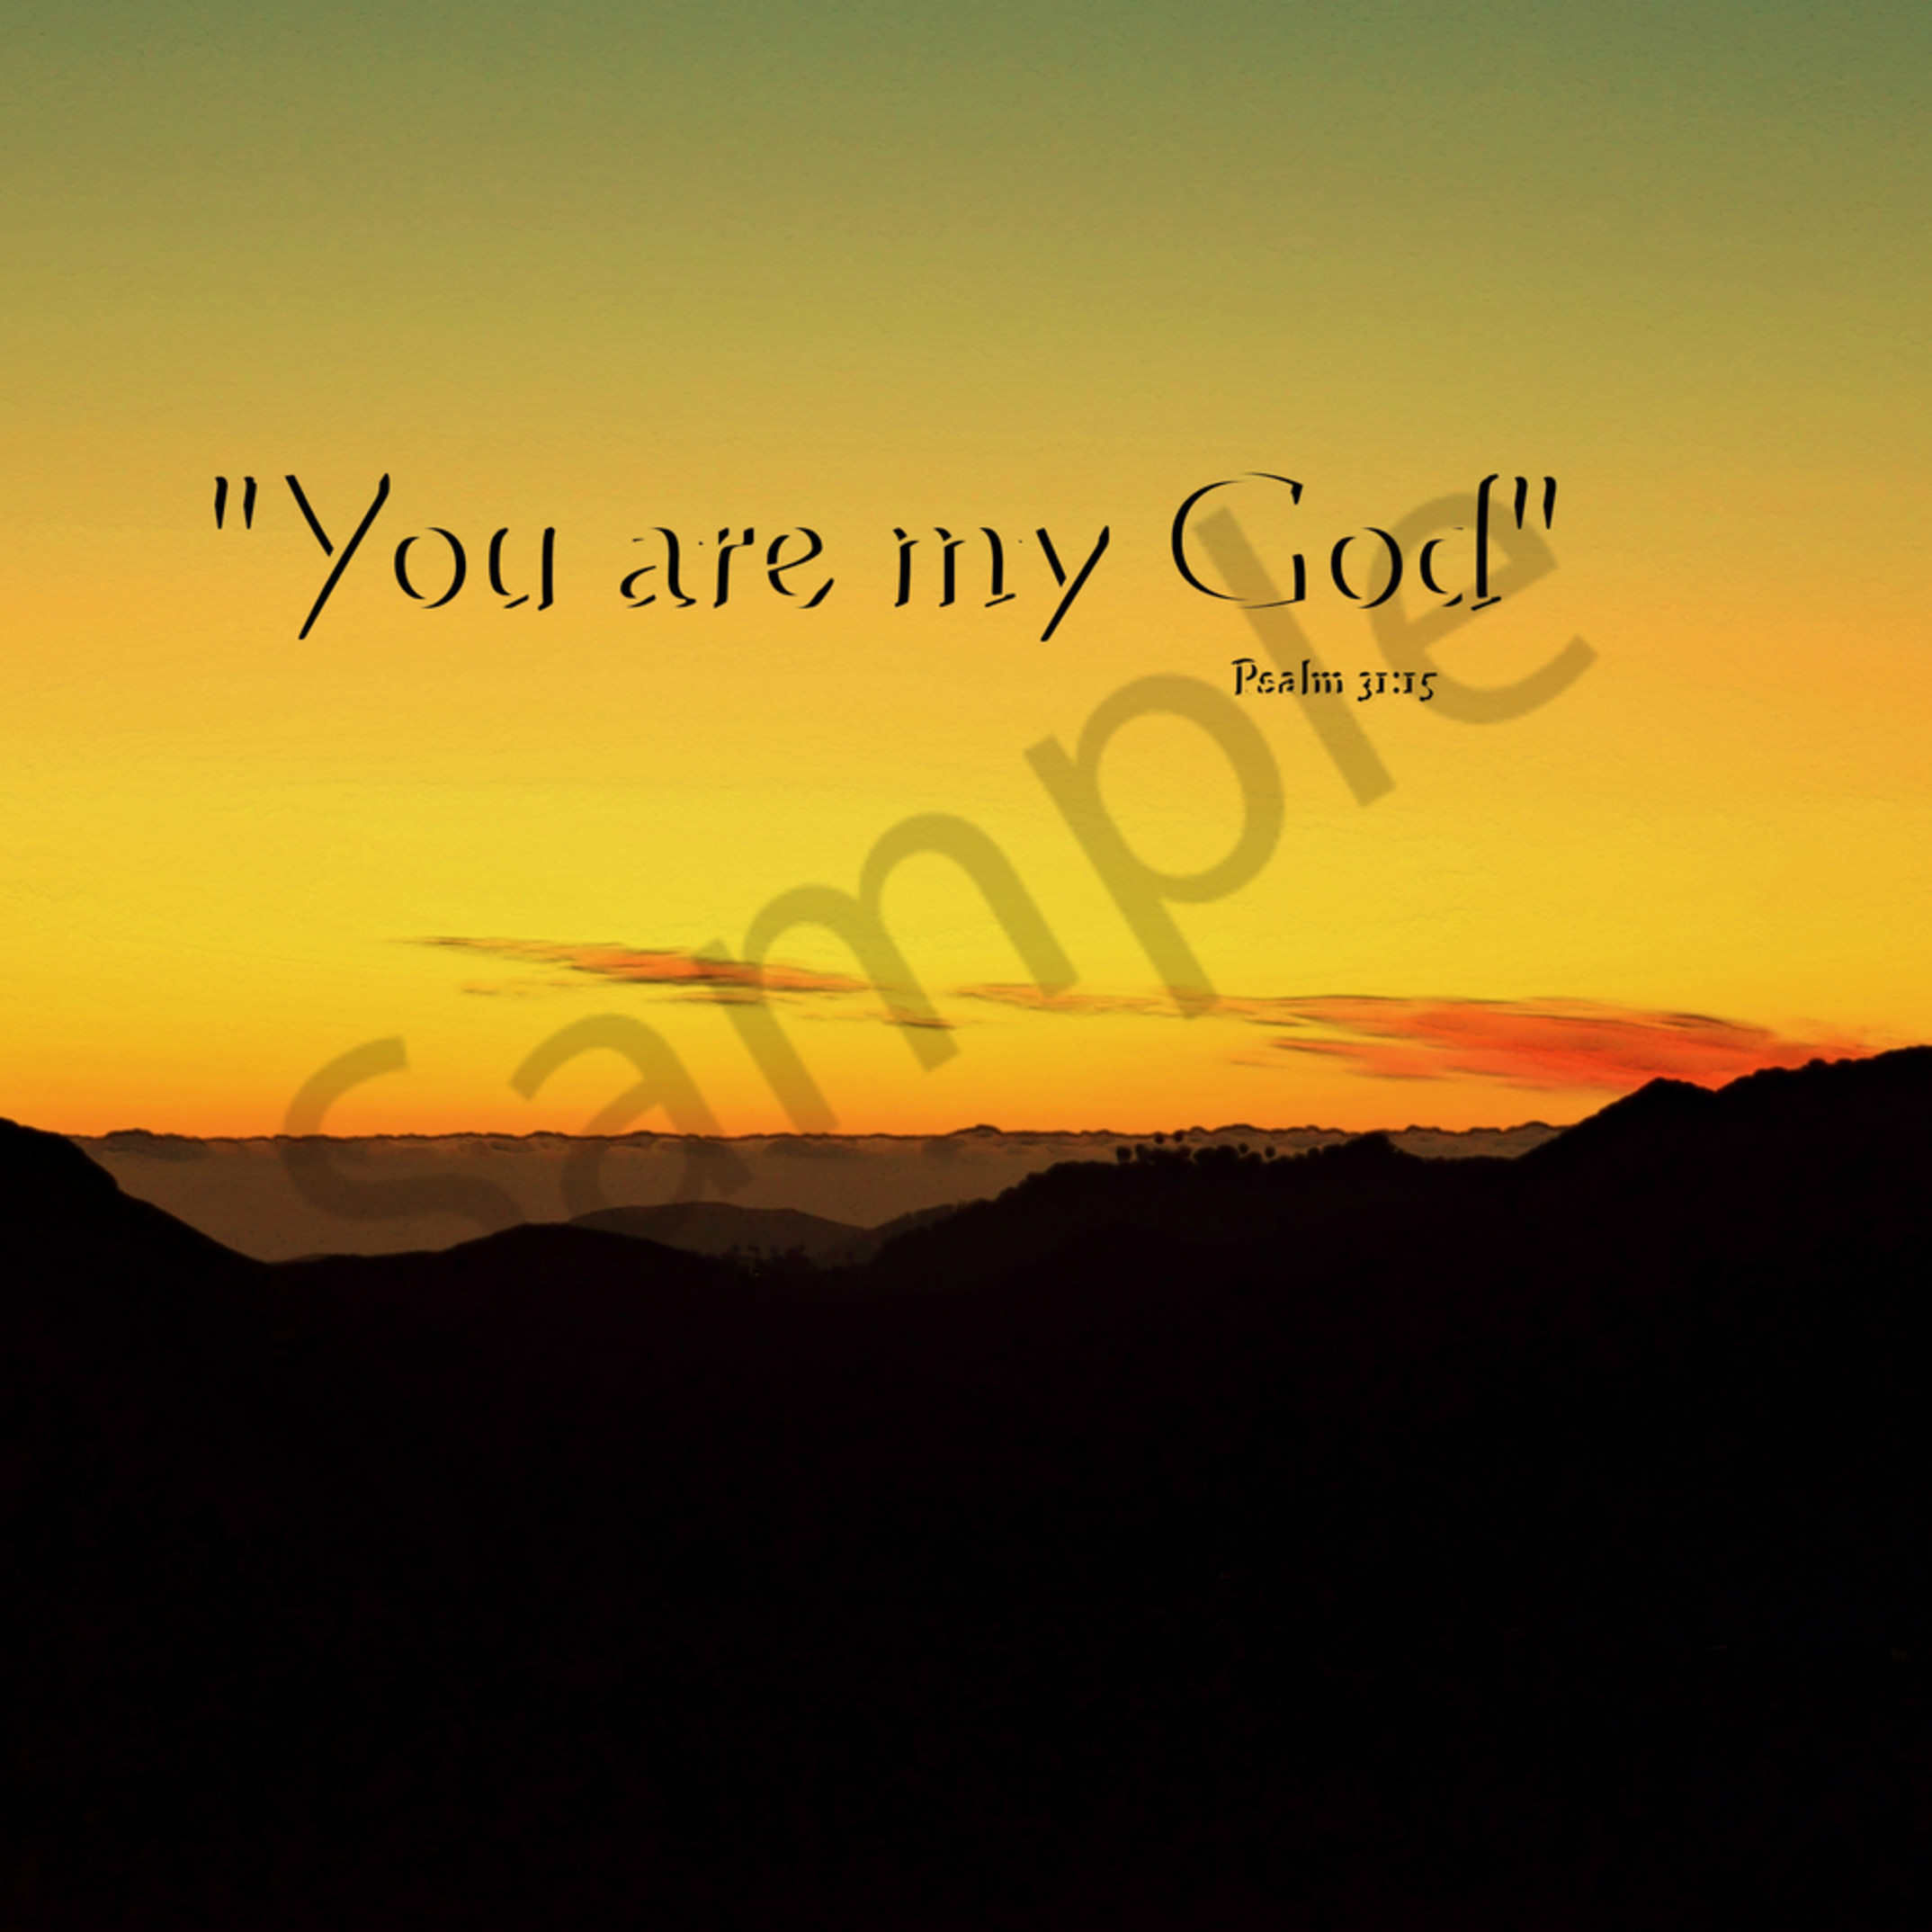 You are my god   dsc 0894 psalm 31   sunset on the way down the mtn snrr   hotwax effect ps   text tpgwqm